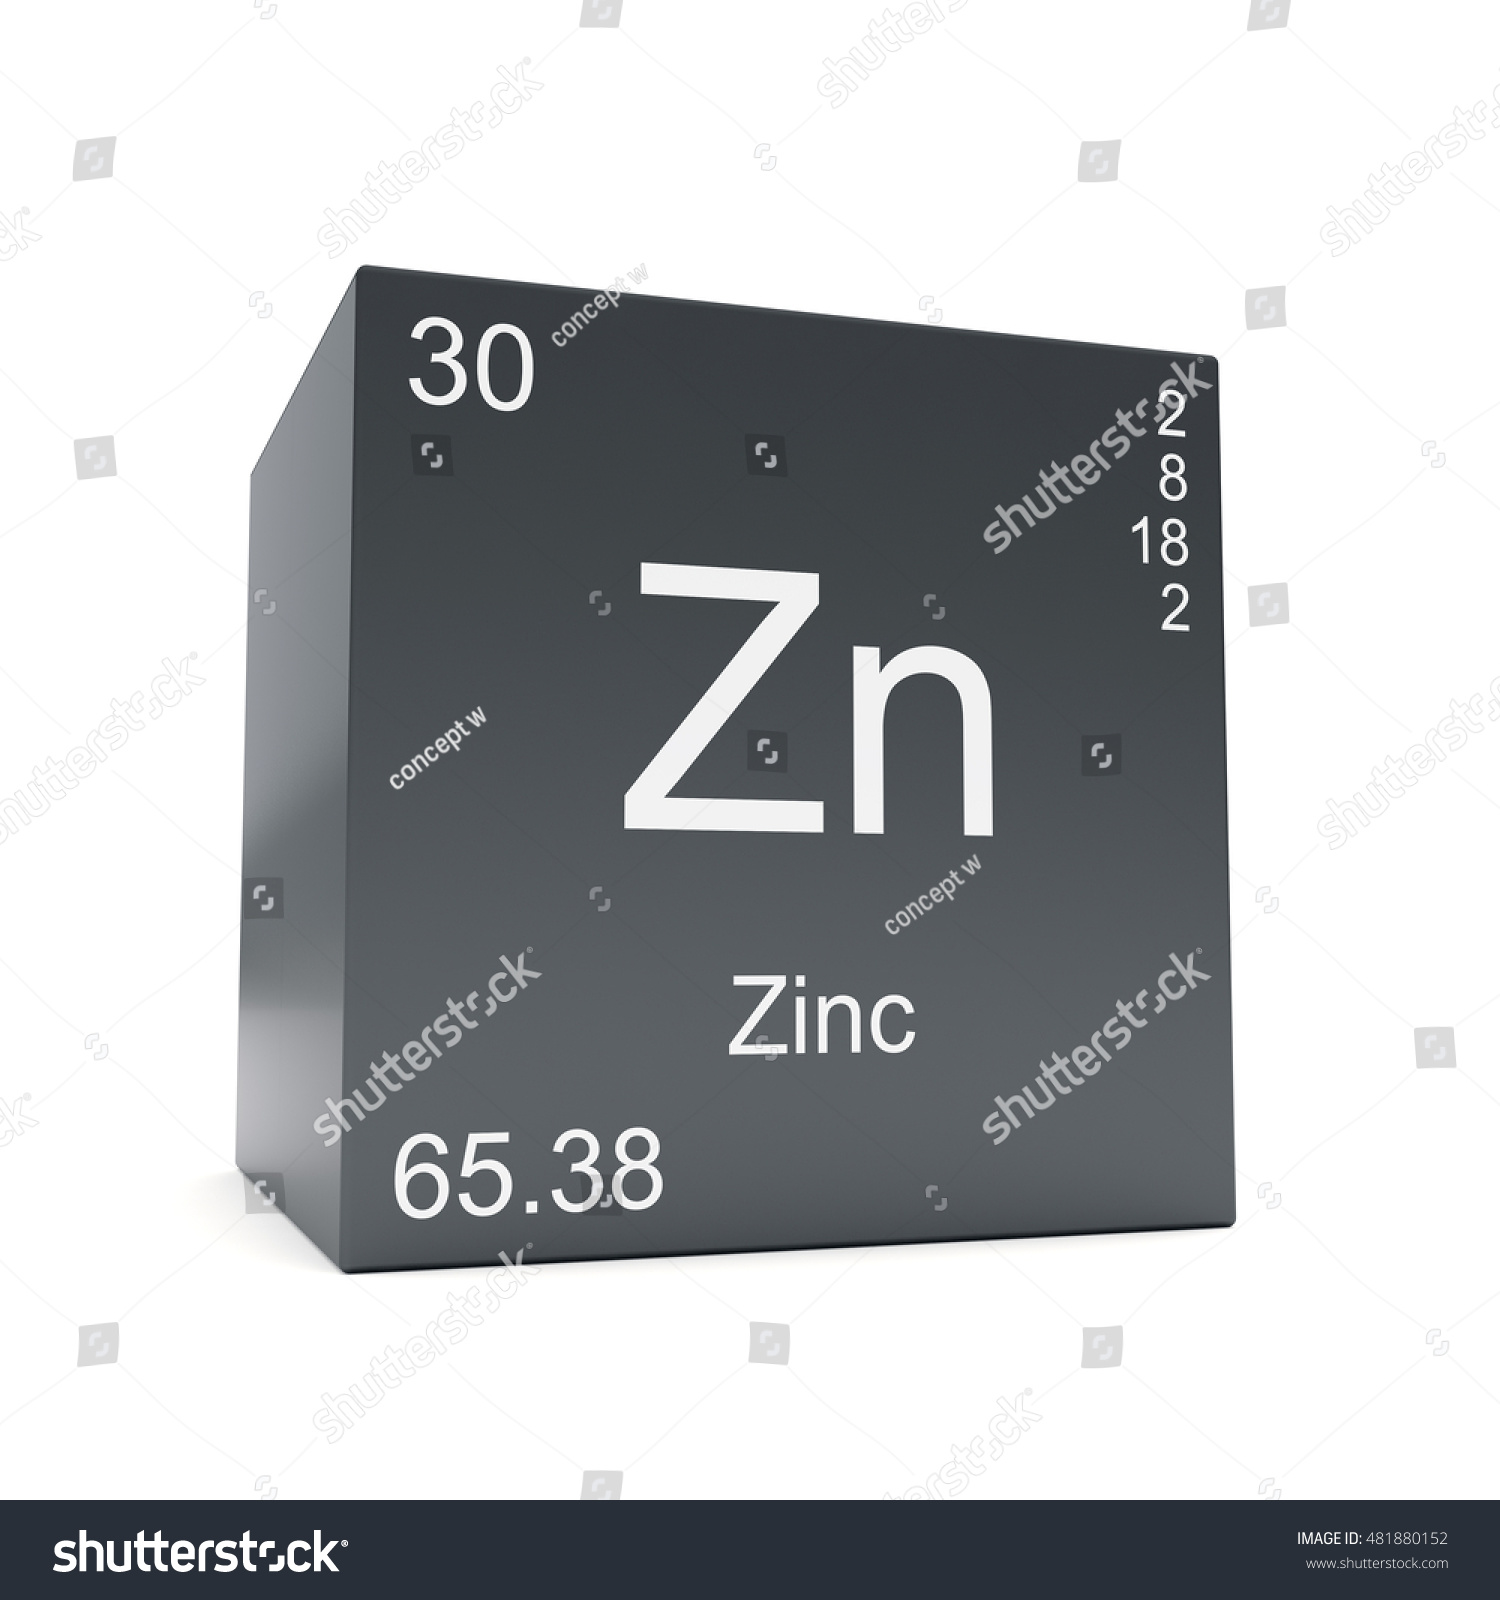 Zinc chemical element symbol periodic table stock illustration zinc chemical element symbol from the periodic table displayed on black cube 3d render urtaz Images